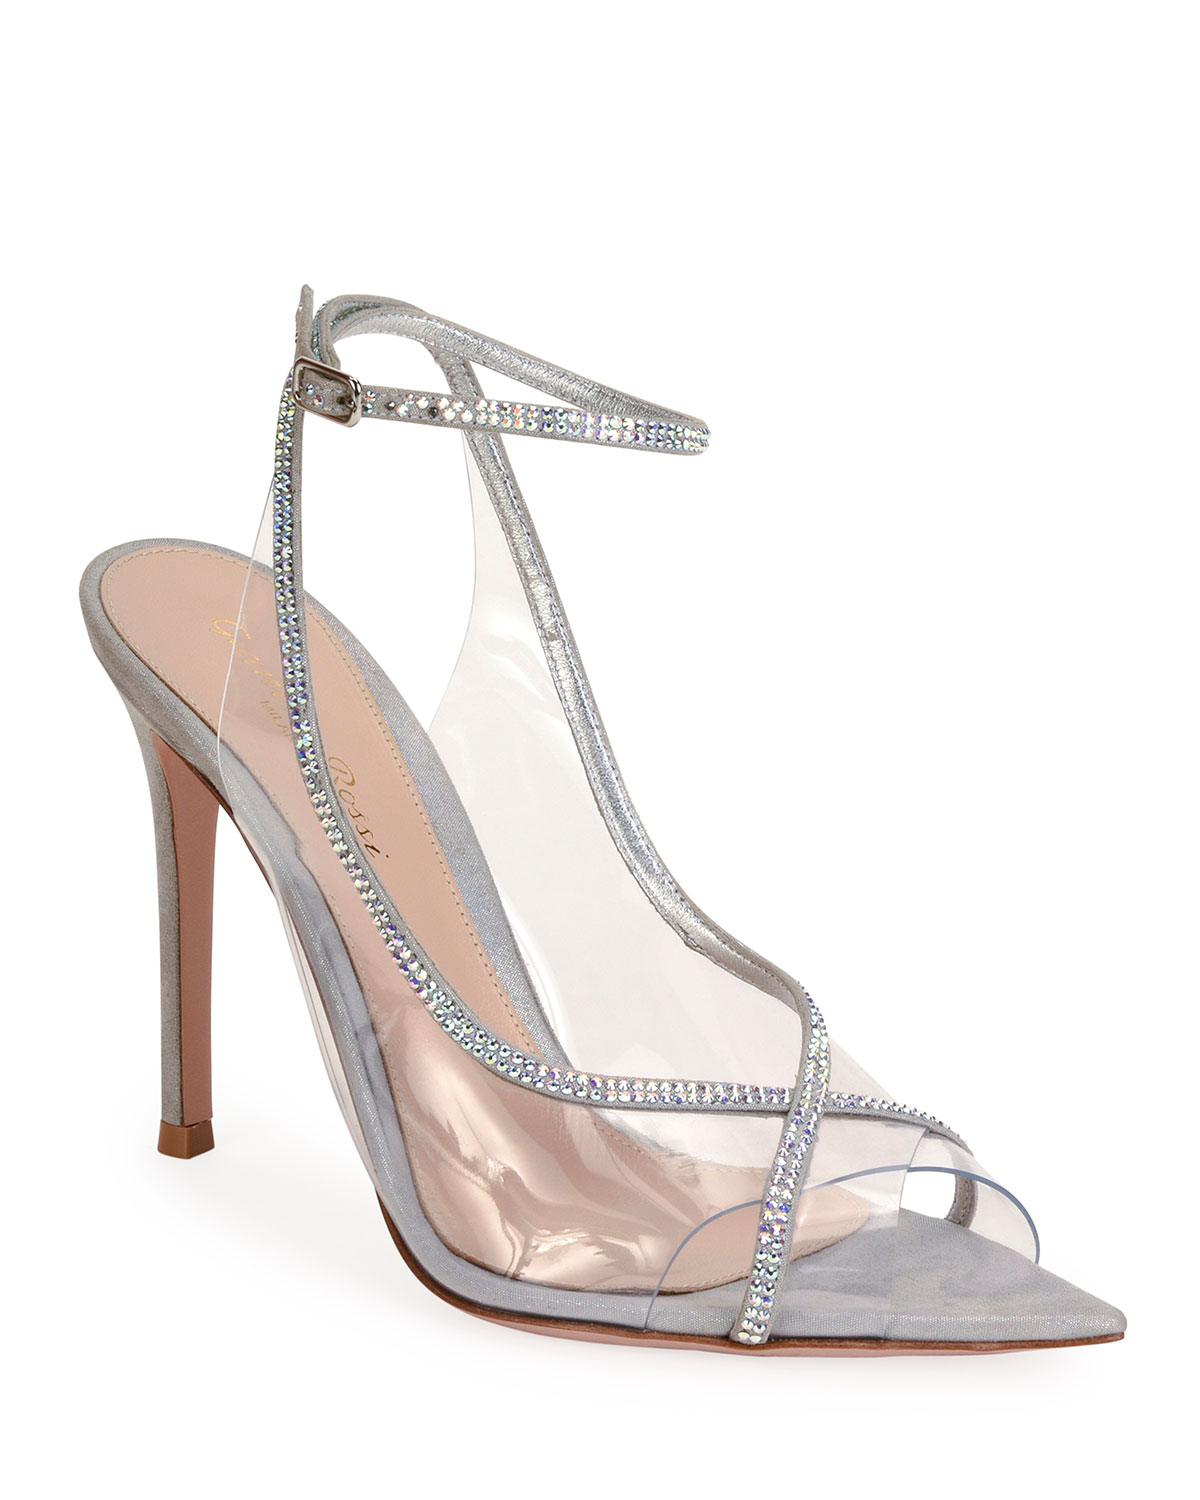 Open-Toe Strass Sandals by Gianvito Rossi, available on neimanmarcus.com for $1245 Kylie Jenner Shoes Exact Product